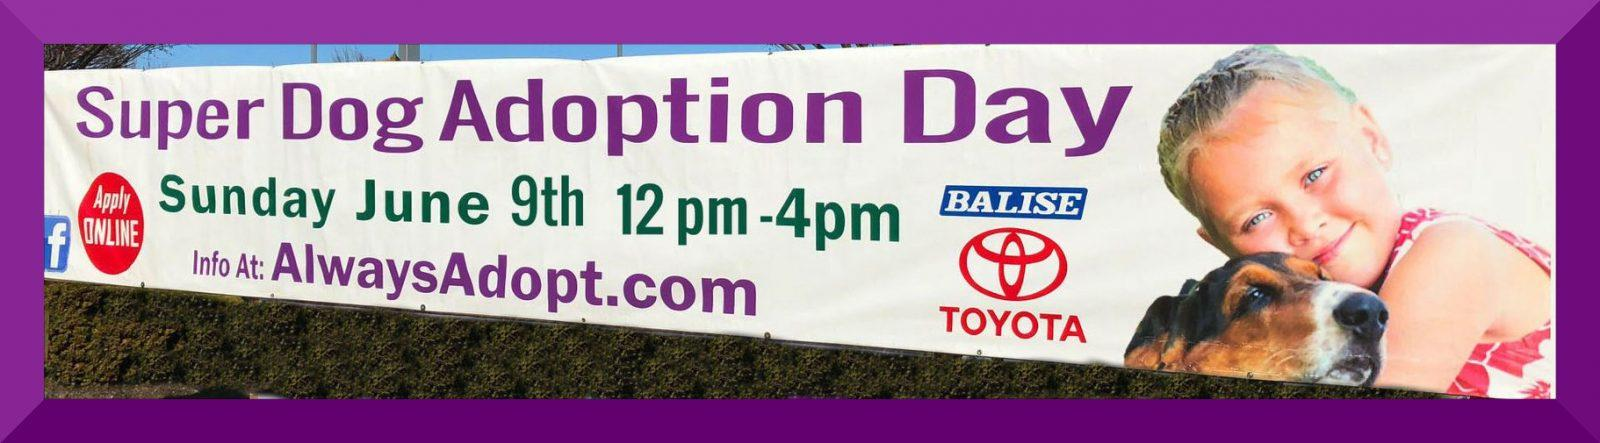 Sos At Super Dog Adoption Day Save One Soul Animal Rescue League